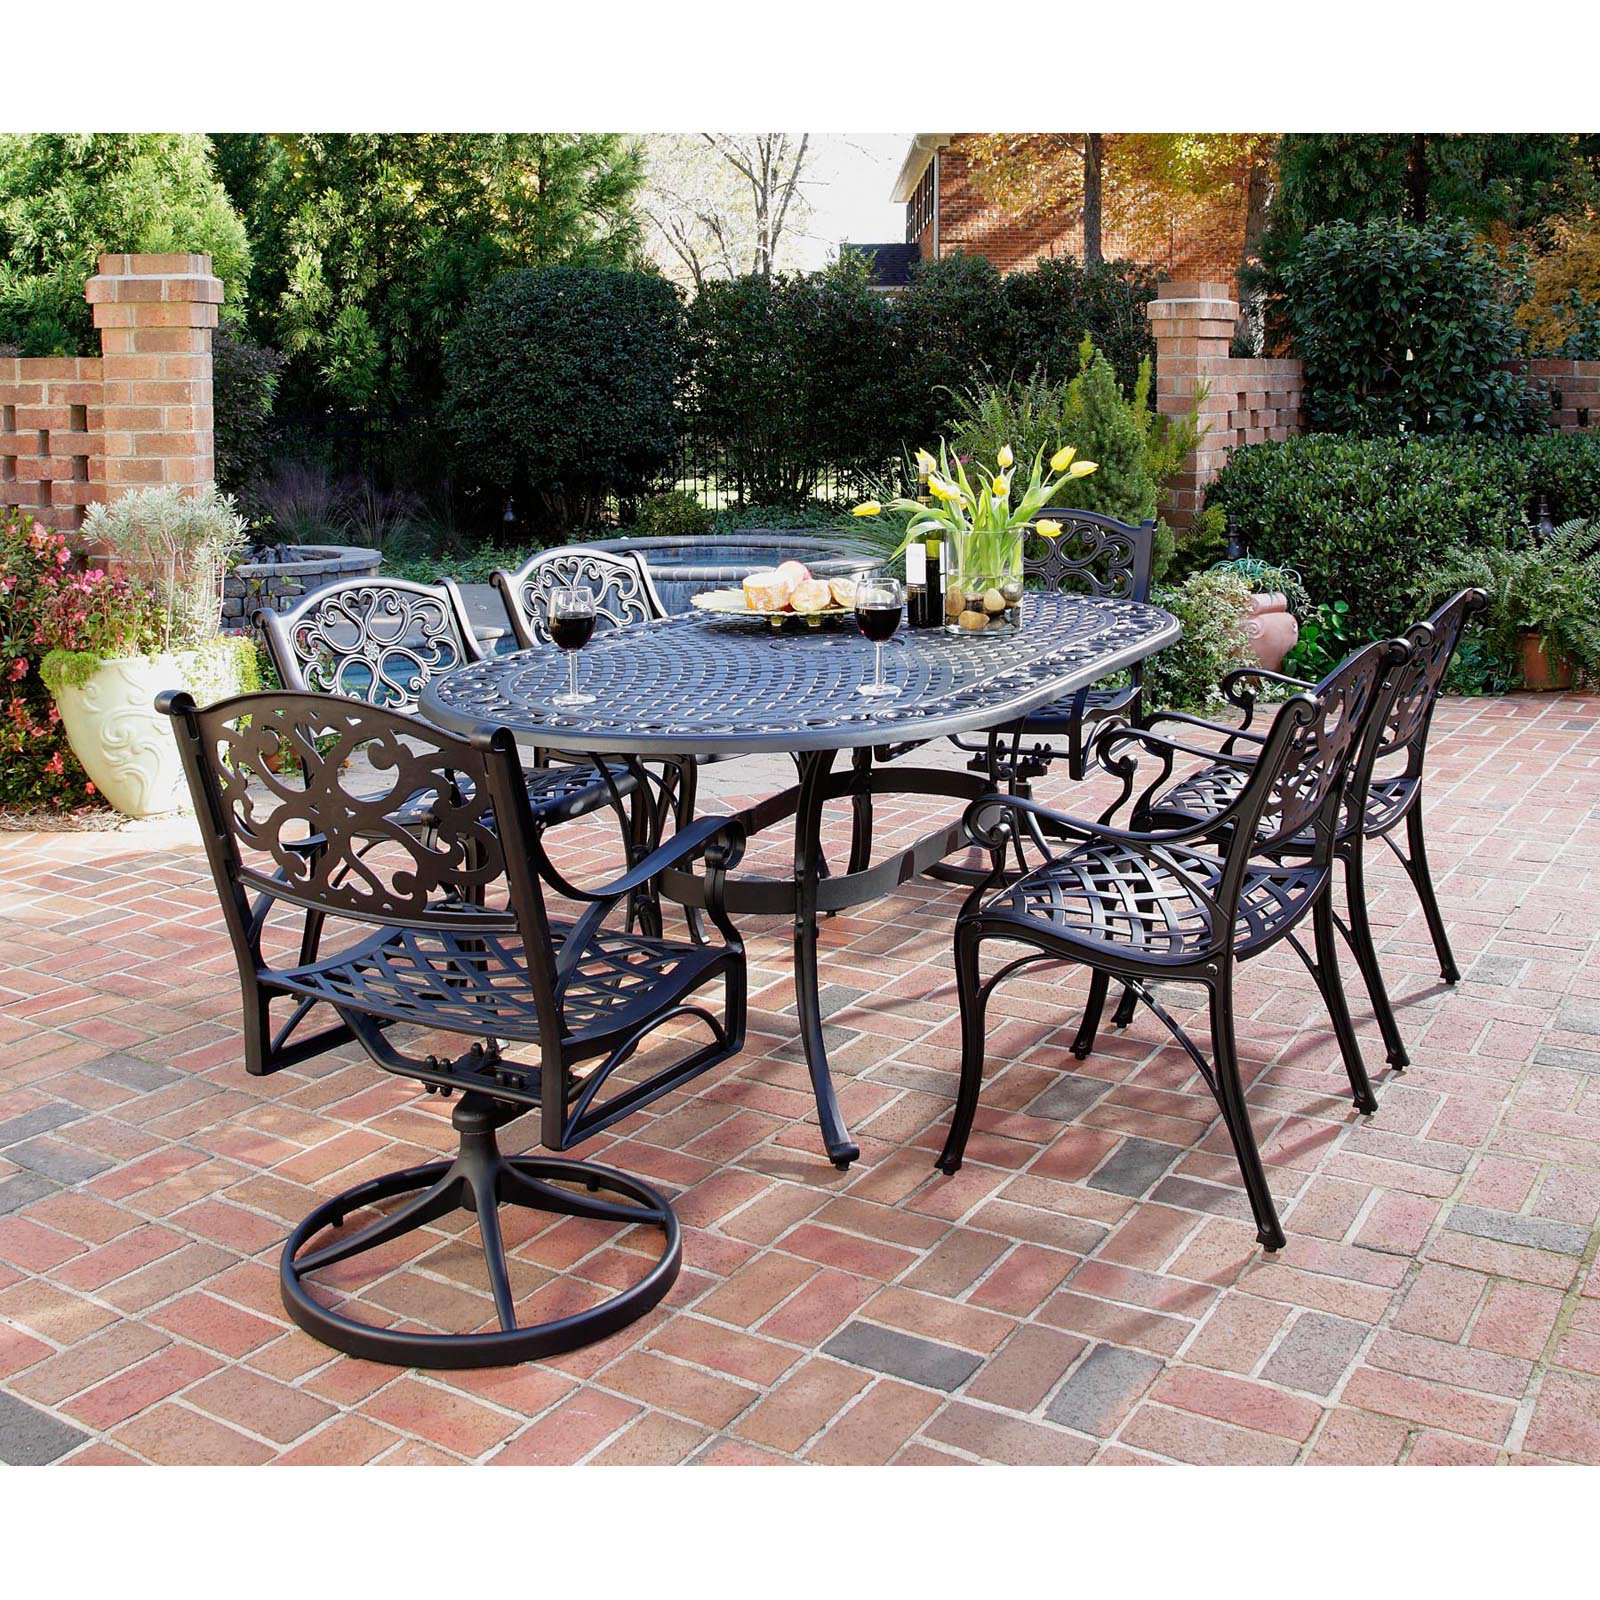 patio dining sets black photo - 2